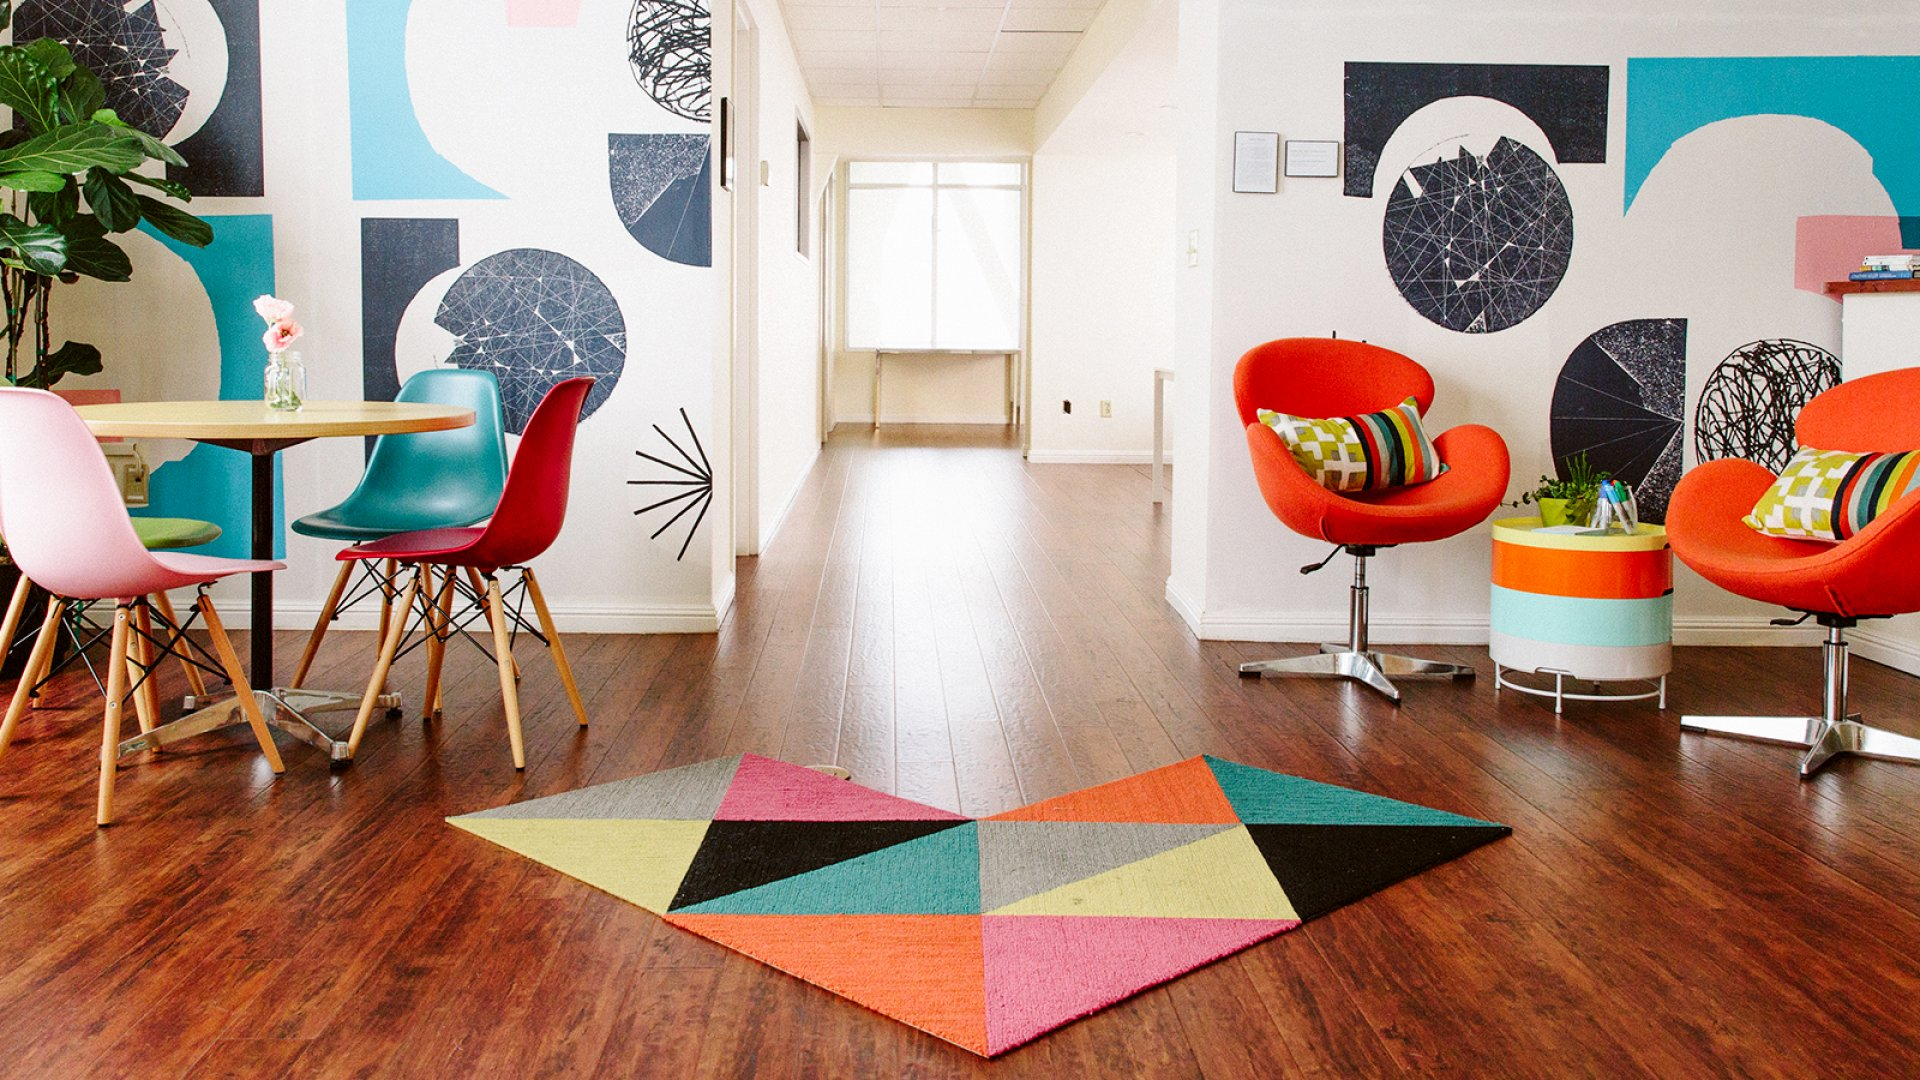 How One Stylish and Scrappy Startup Designed Its Office in a Single Weekend for $5,000